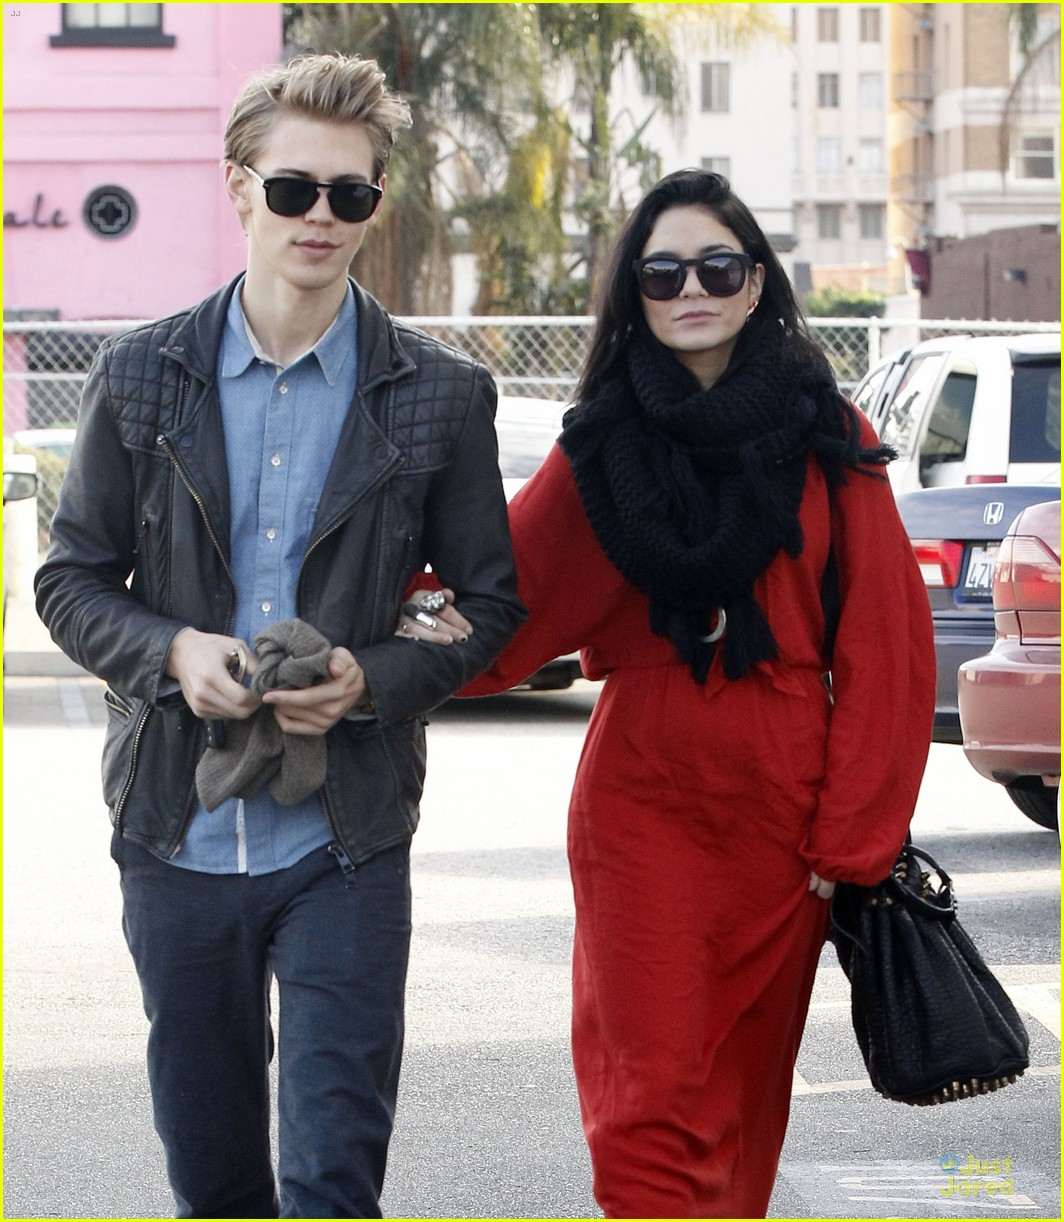 vanessa hudgens & austin butler church going couple 04